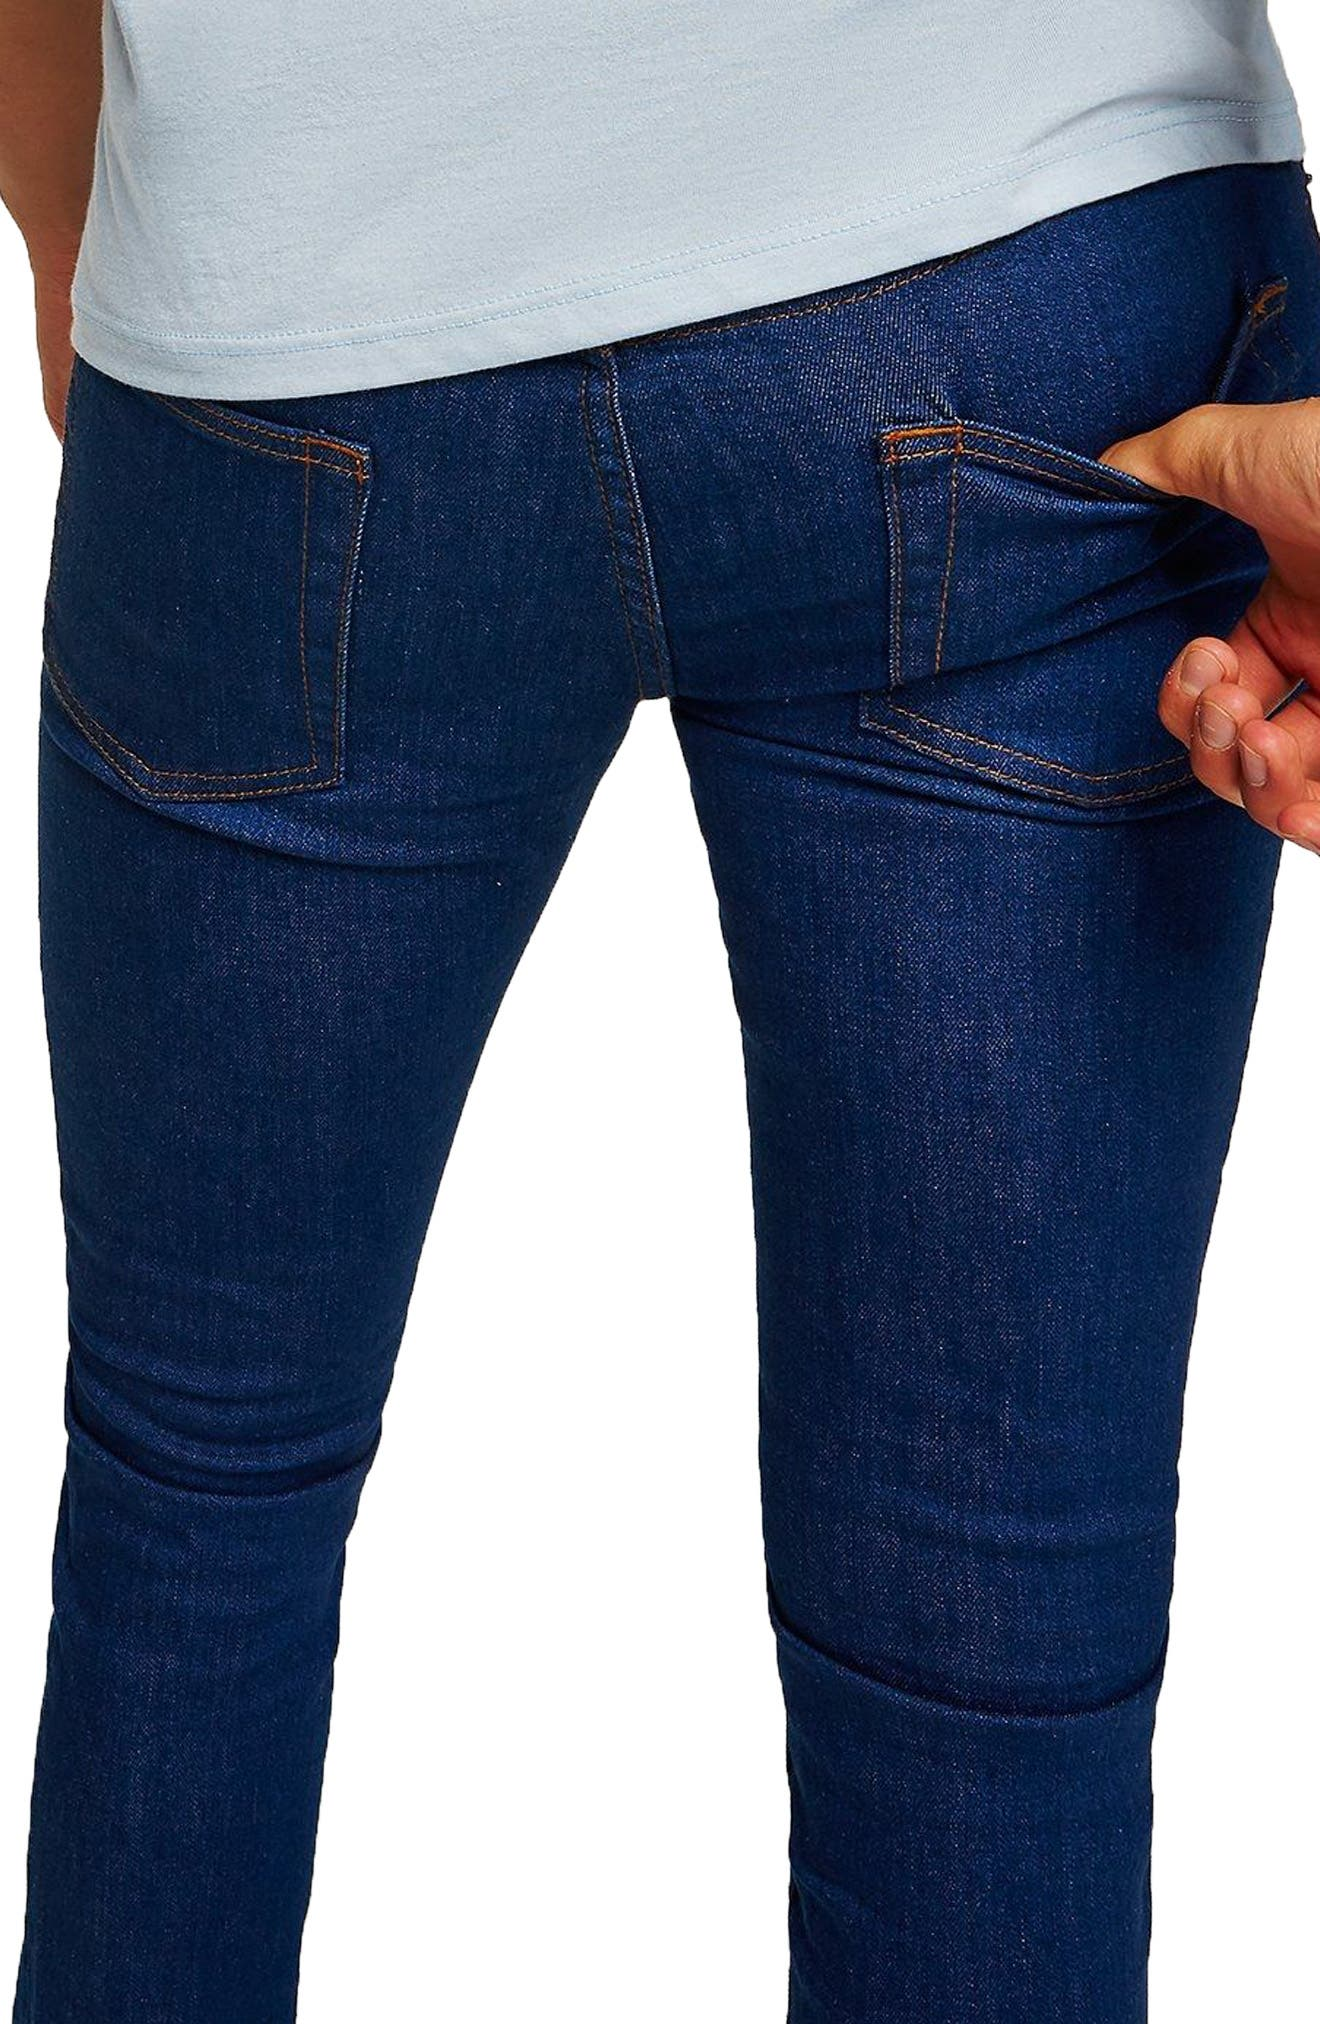 Stretch Skinny Fit Jeans,                             Alternate thumbnail 3, color,                             400